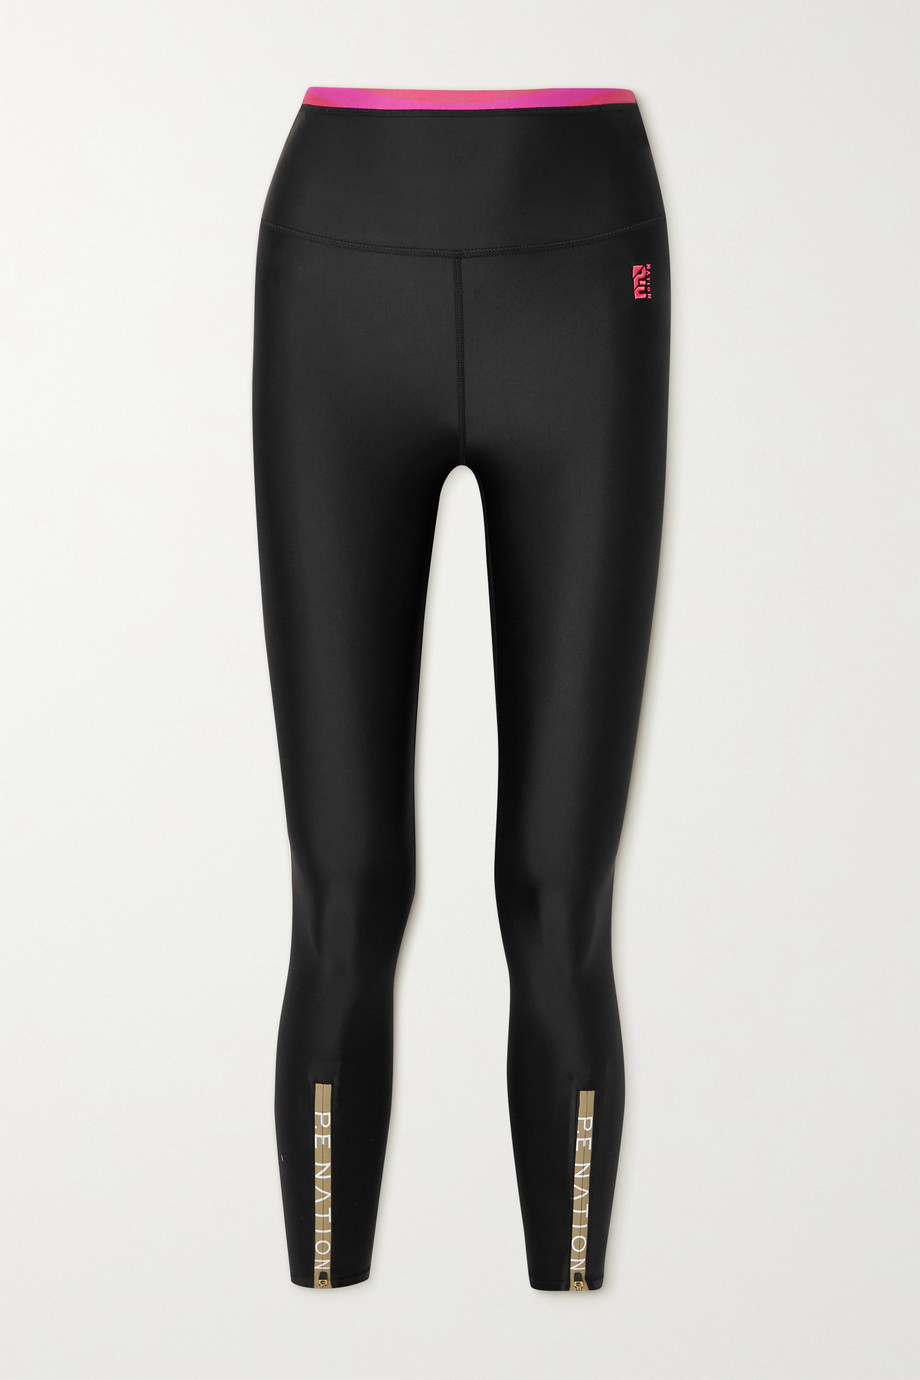 P.E NATION Steady Run zip-detailed recycled stretch leggings